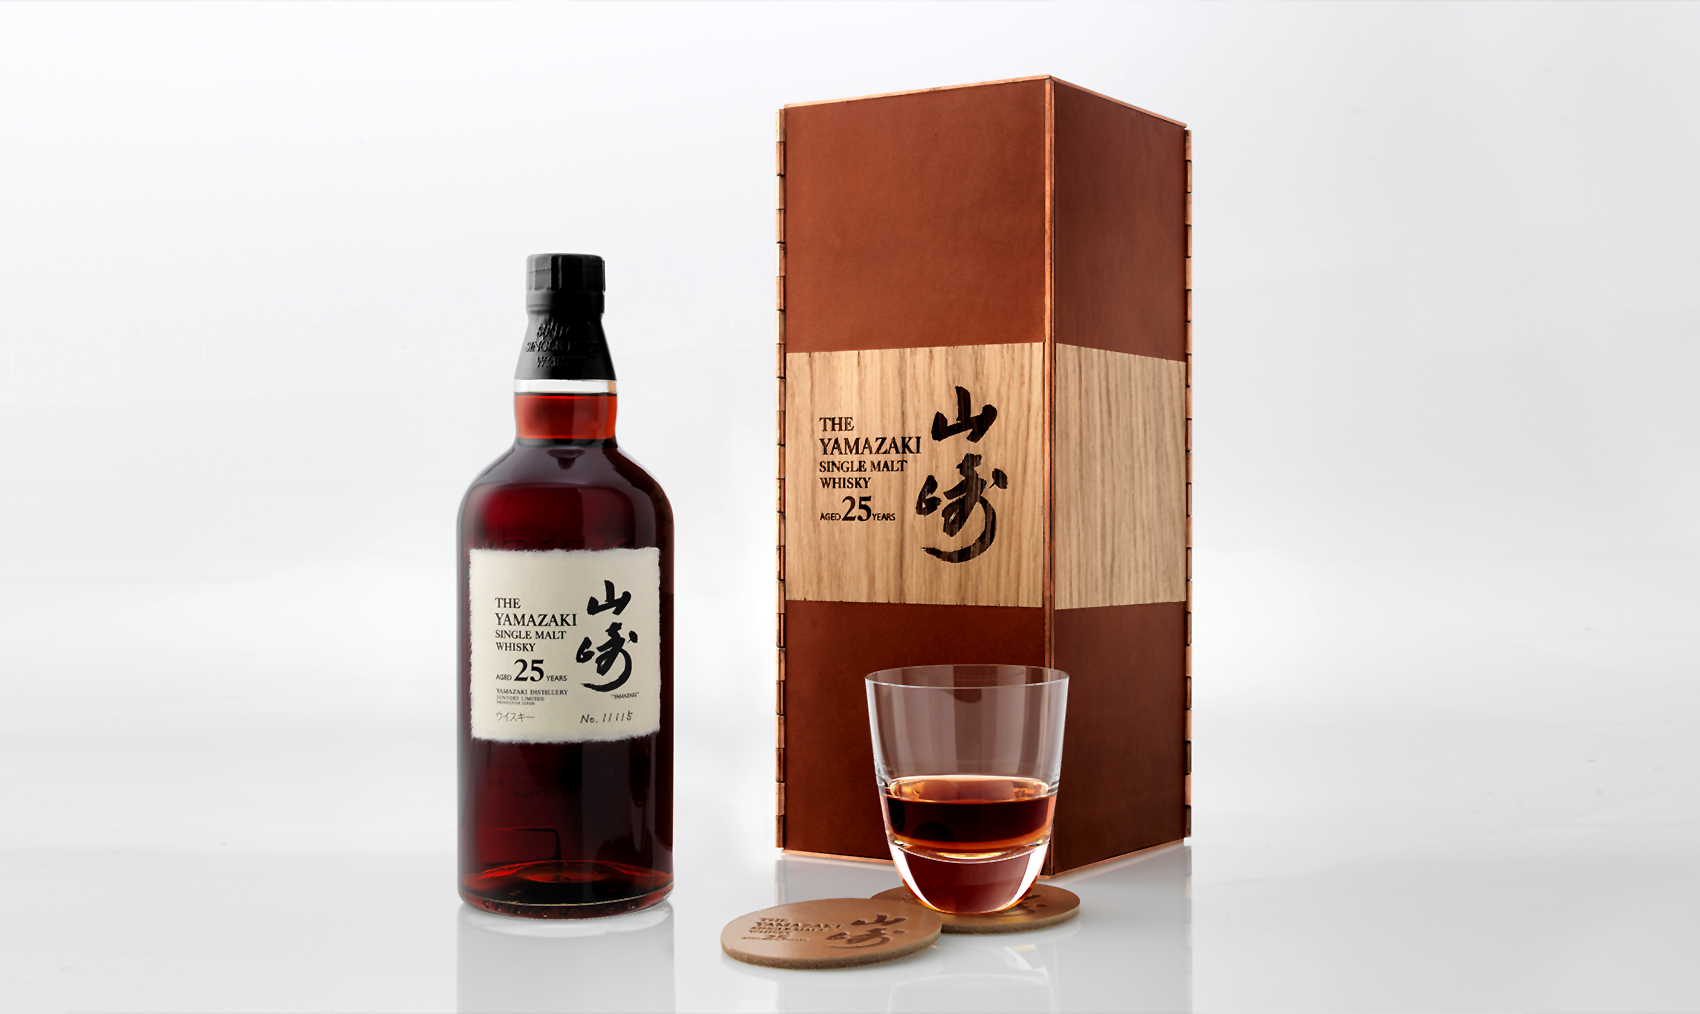 The whisky poured into a glass, beside its box and bottle.